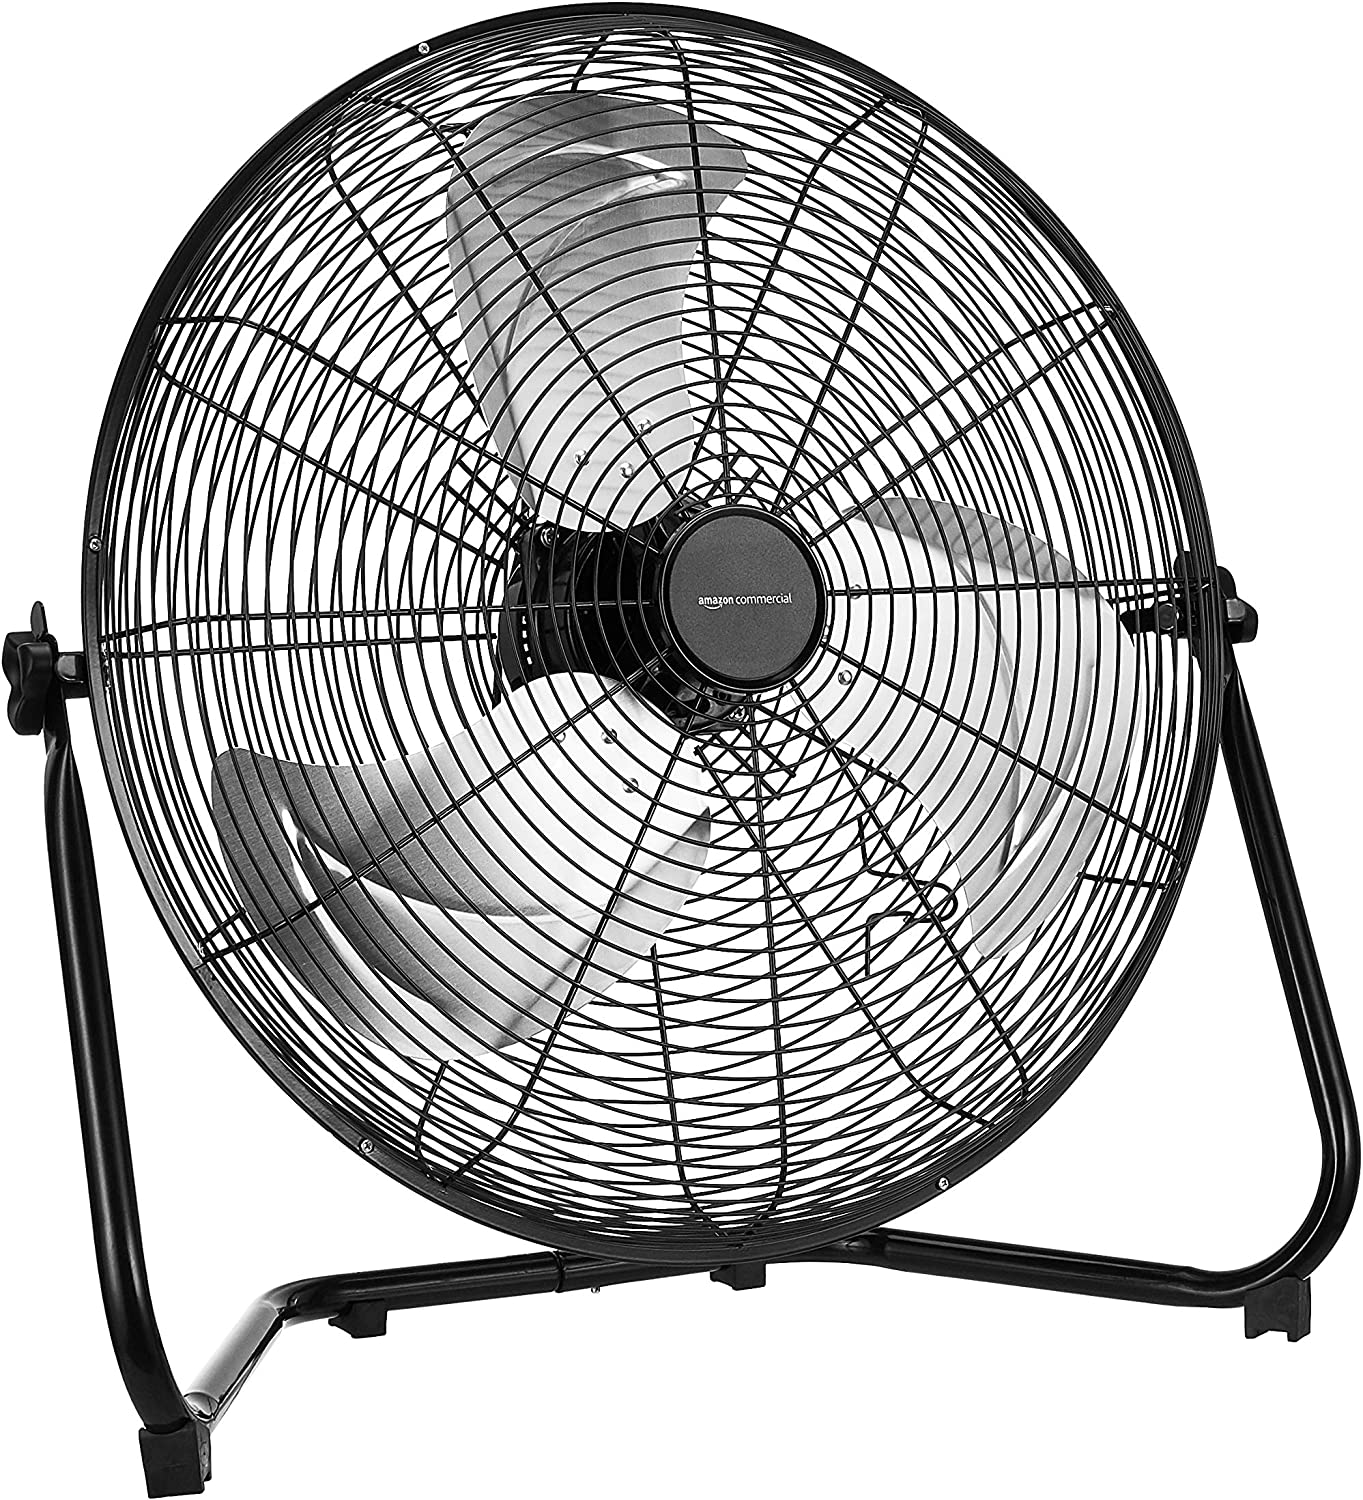 2021 autumn and winter new AmazonCommercial 20-Inch Branded goods High Velocity Industrial Fan